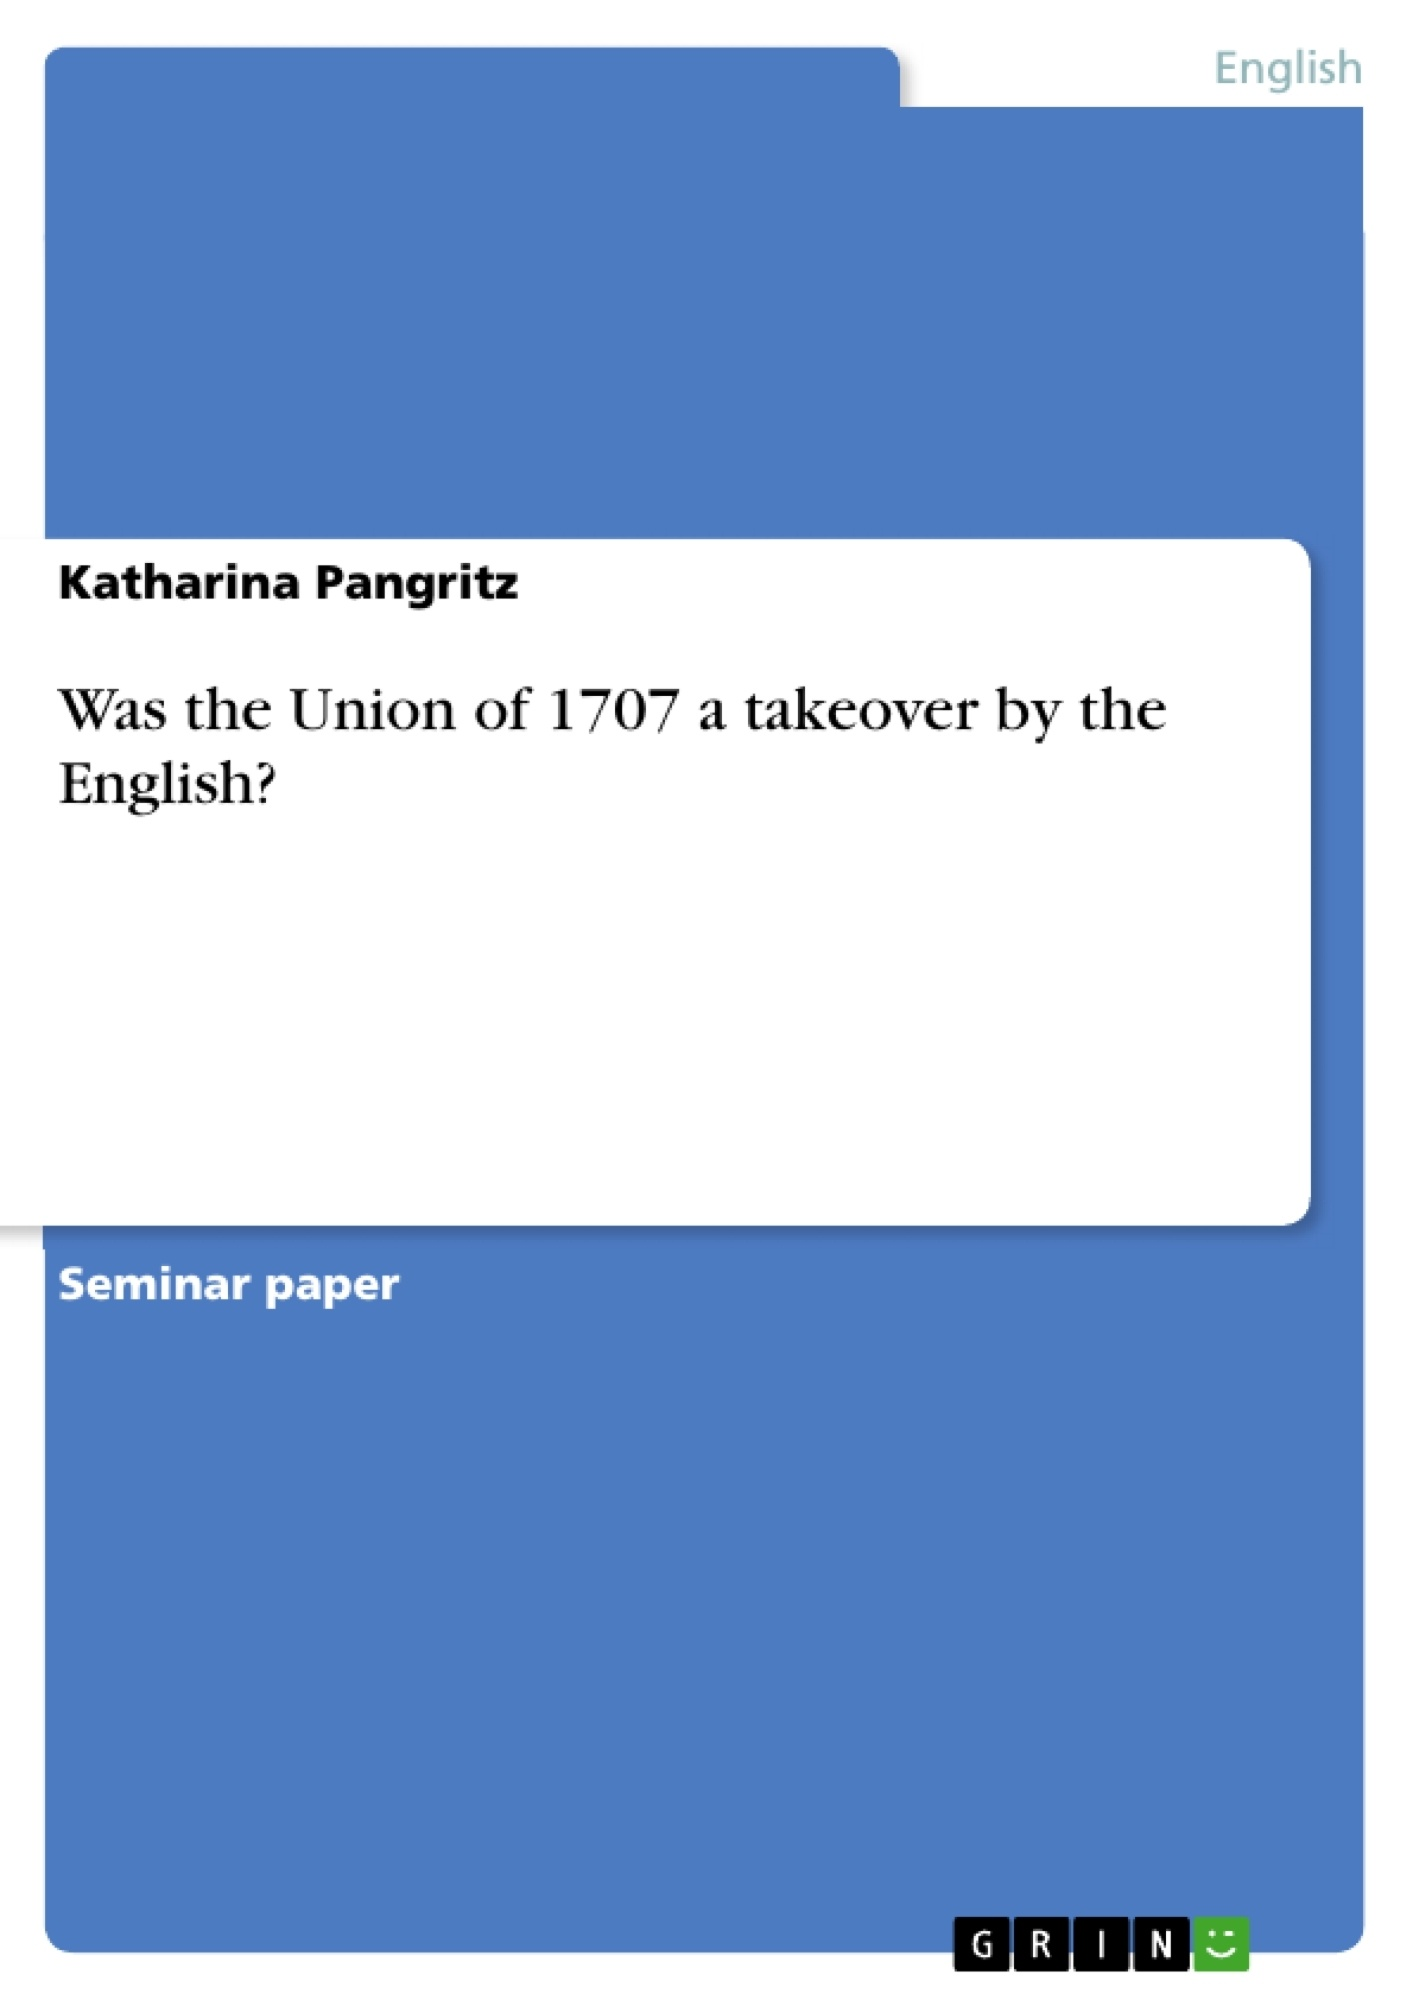 Title: Was the Union of 1707 a takeover by the English?